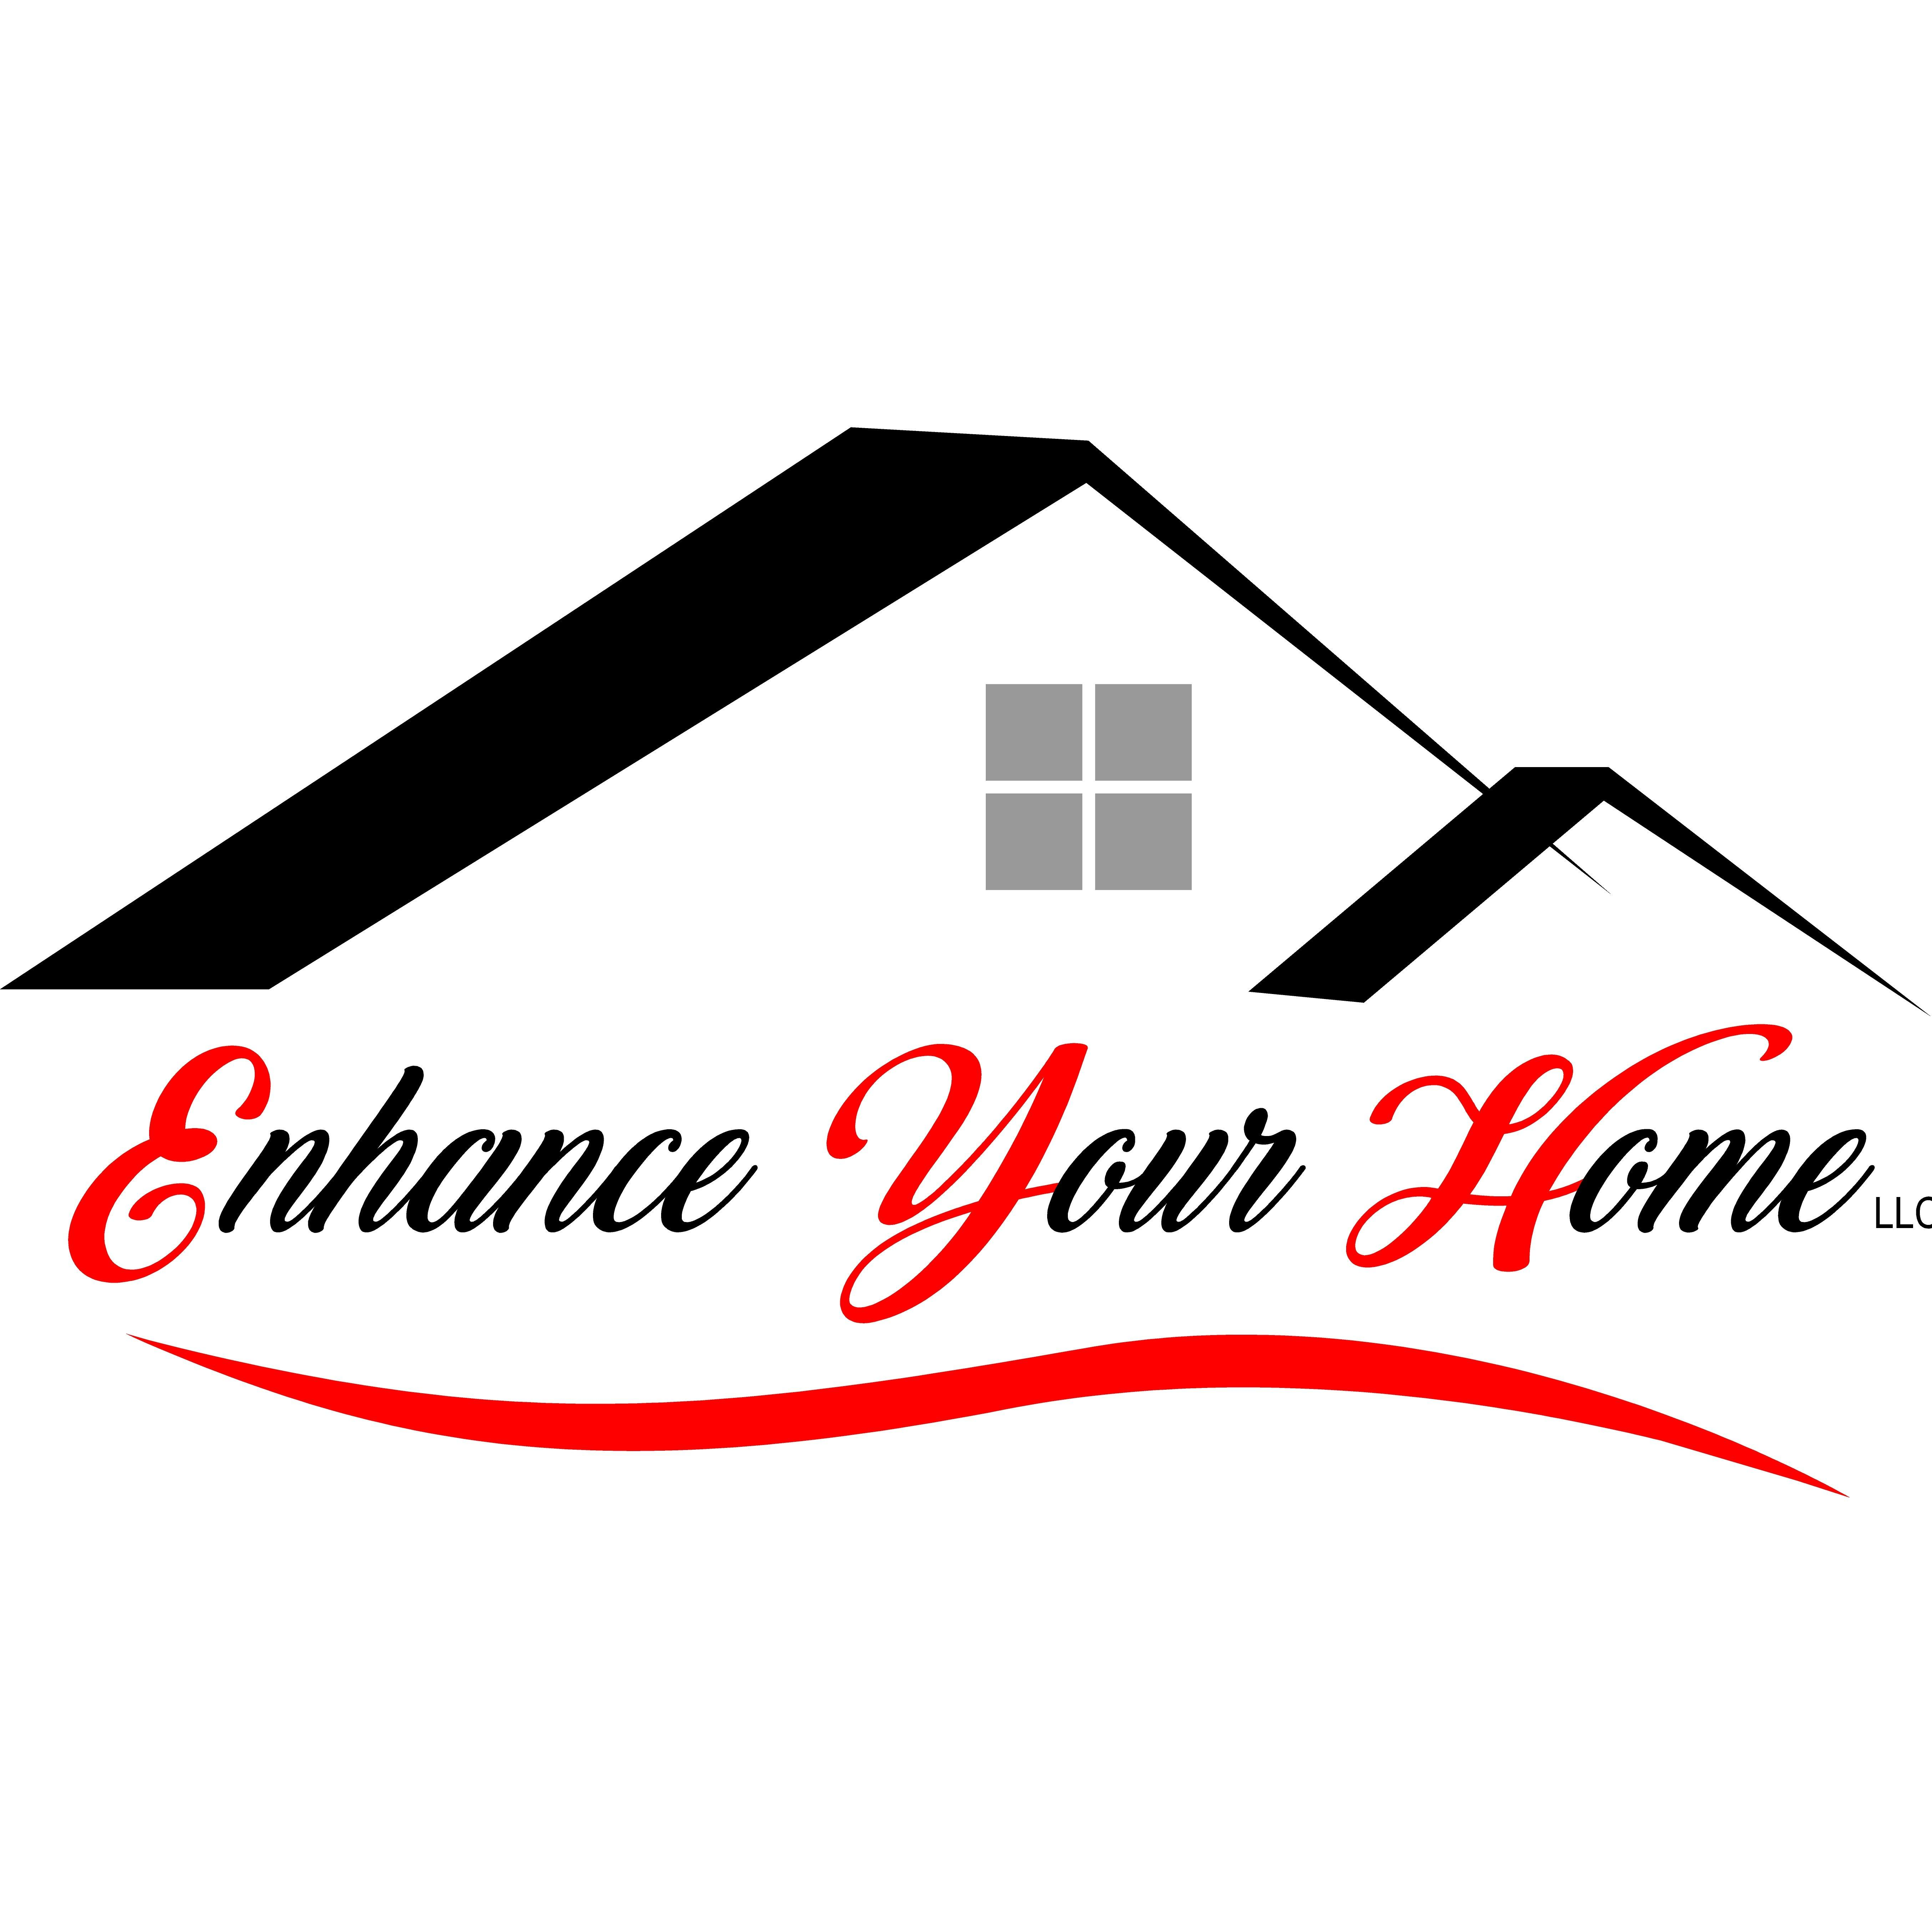 Enhance Your Home LLC